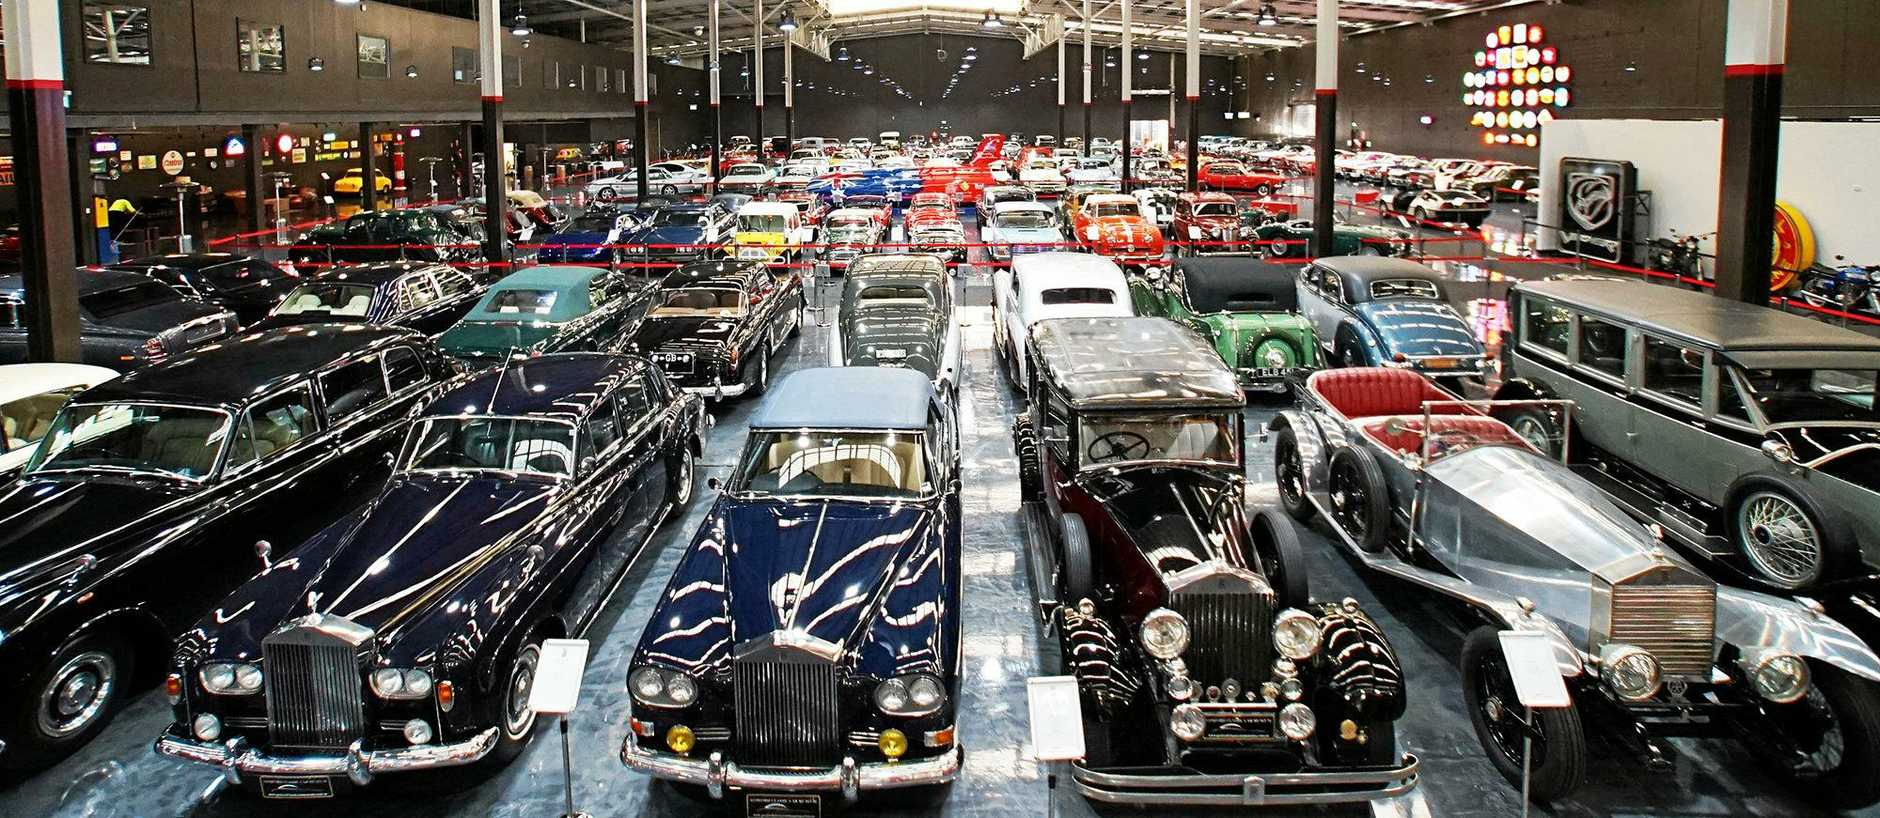 Already the Gosford Classic Car Museum has attracted thousands of visitors.